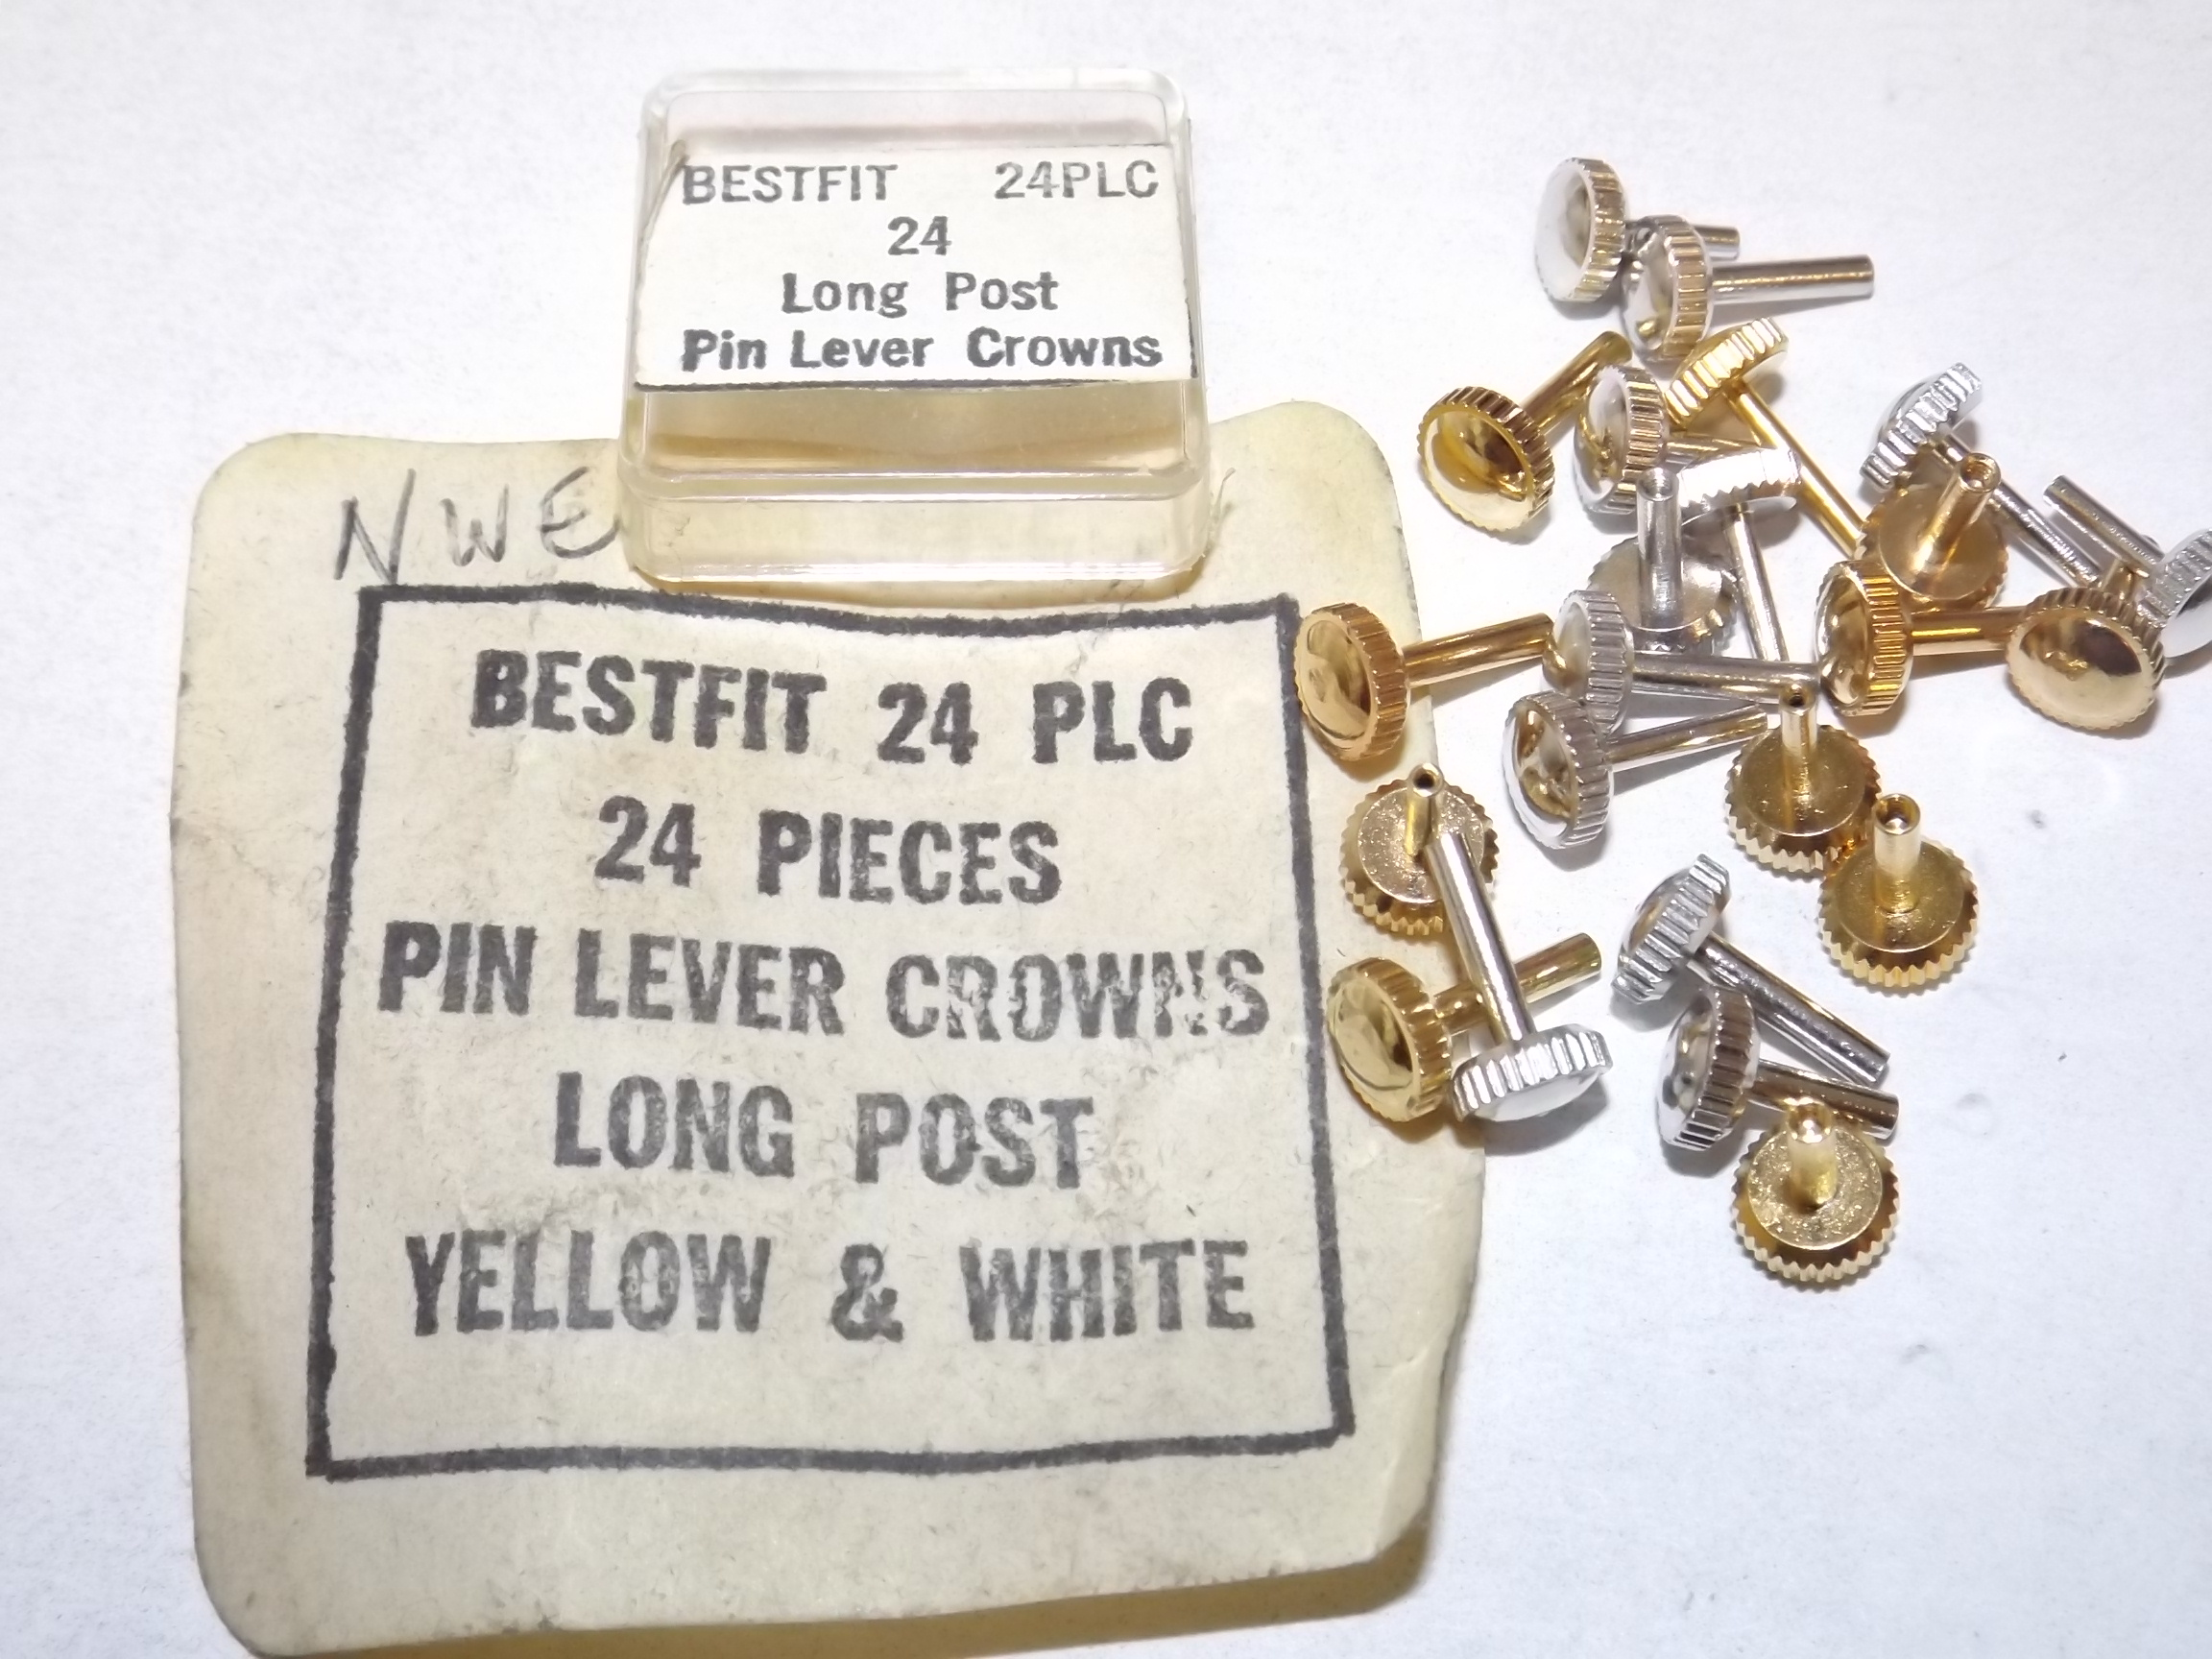 24PLC Assortment of 24 Long Post Pin Lever Crowns- Yellow & White- 8 Left! Bestfit